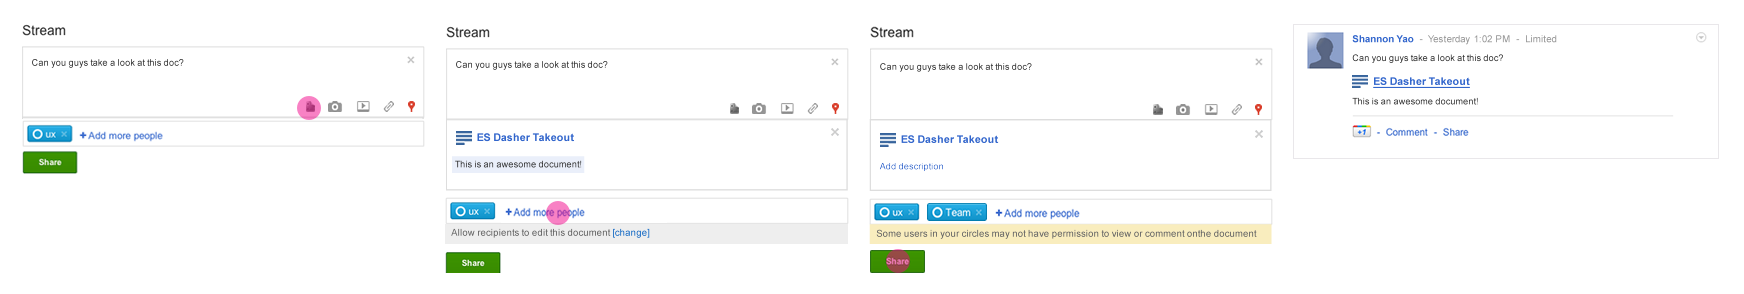 This is a flow for embedding a document to a Google+ post.